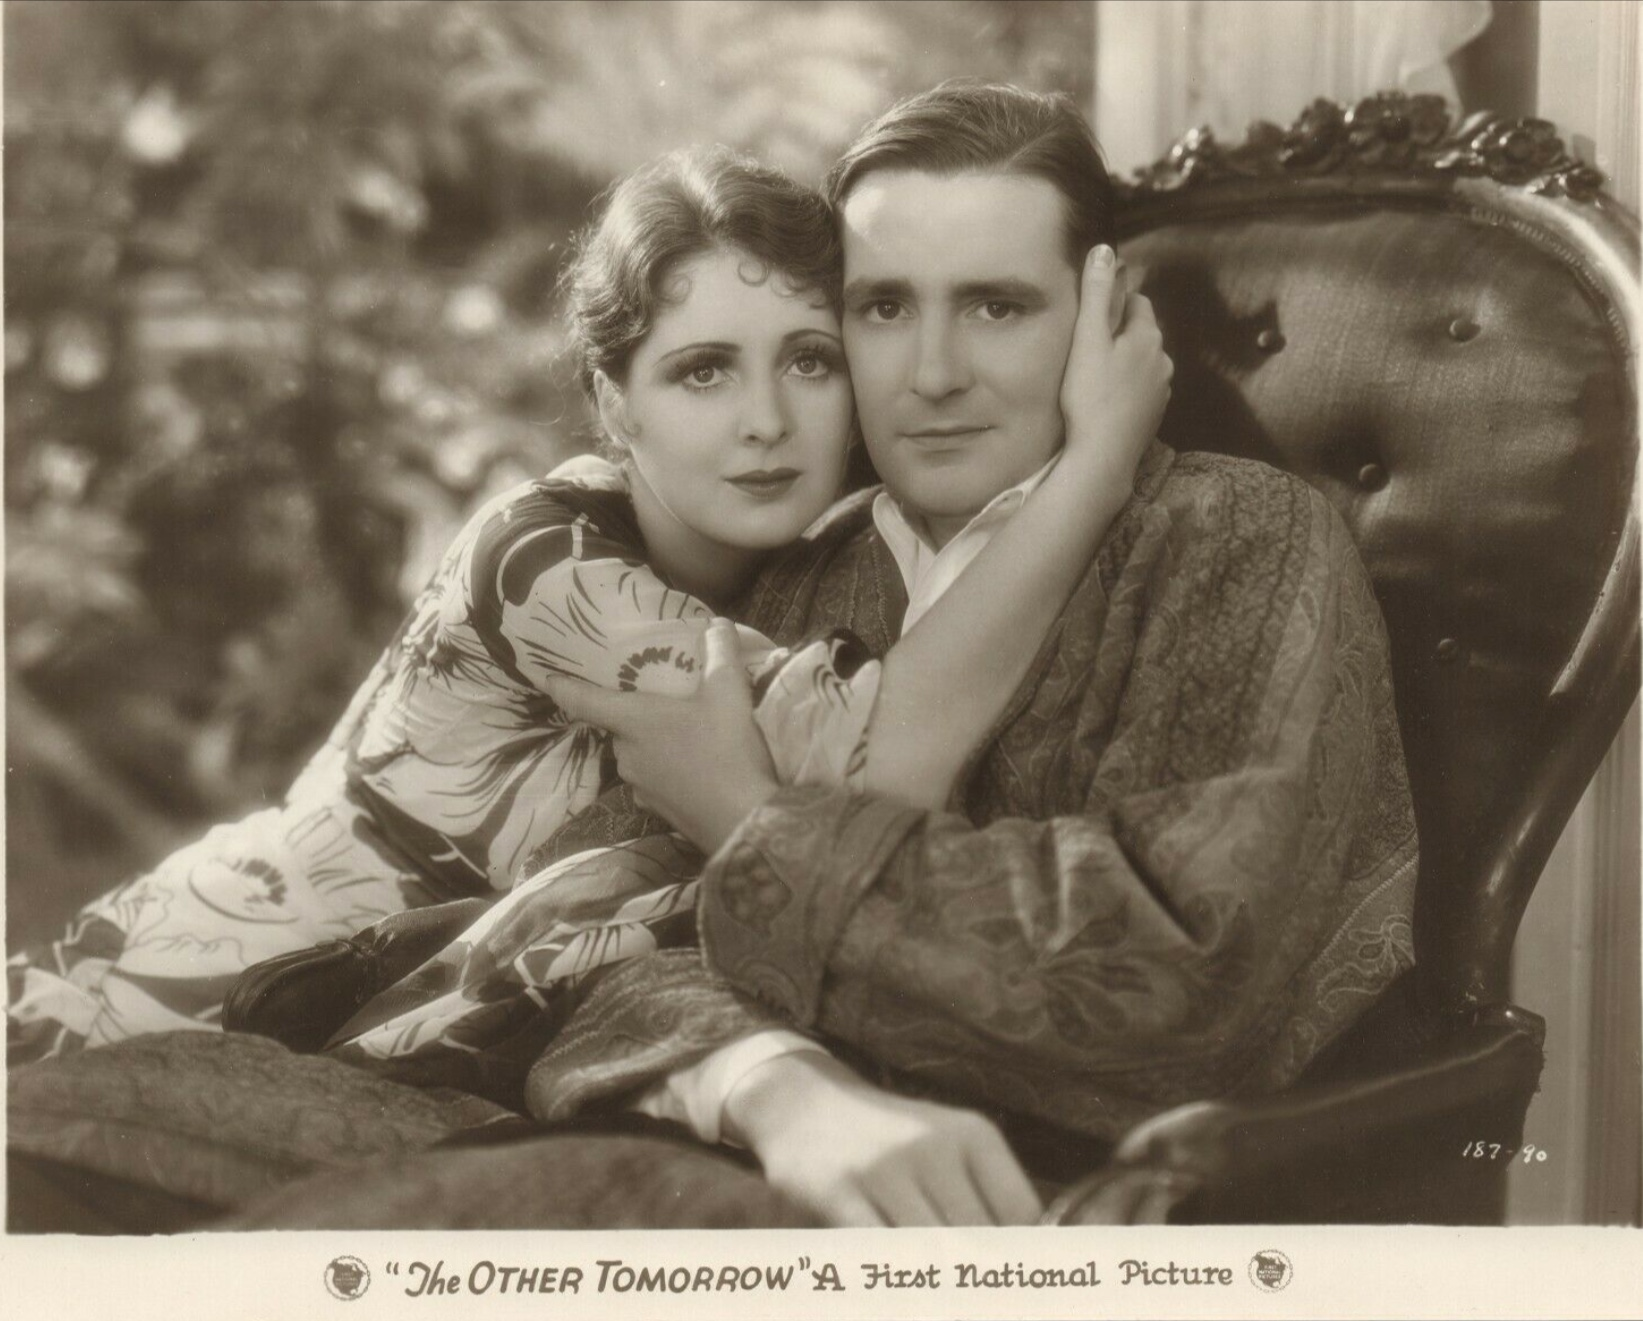 Billie Dove and Kenneth Thomson in The Other Tomorrow (1930)